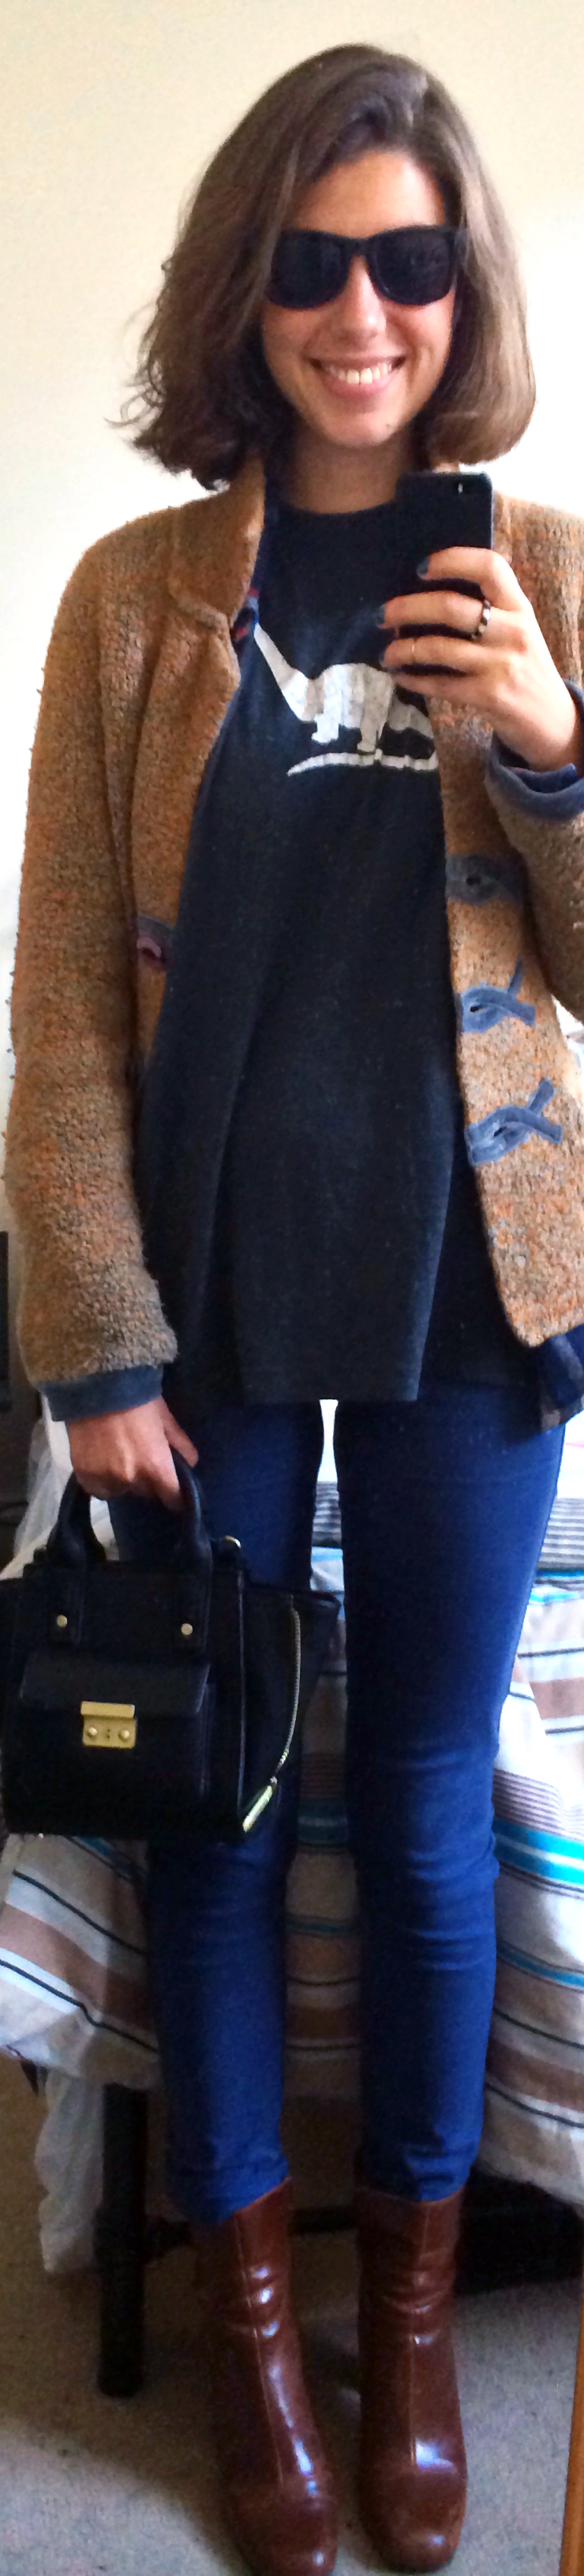 Cardigan ,  Men's Plaid Shirt ,  Blue Pants ,  Brown Heeled Booties , Homemade Dino T-Shirt, Phillip Lim for Target Handbag